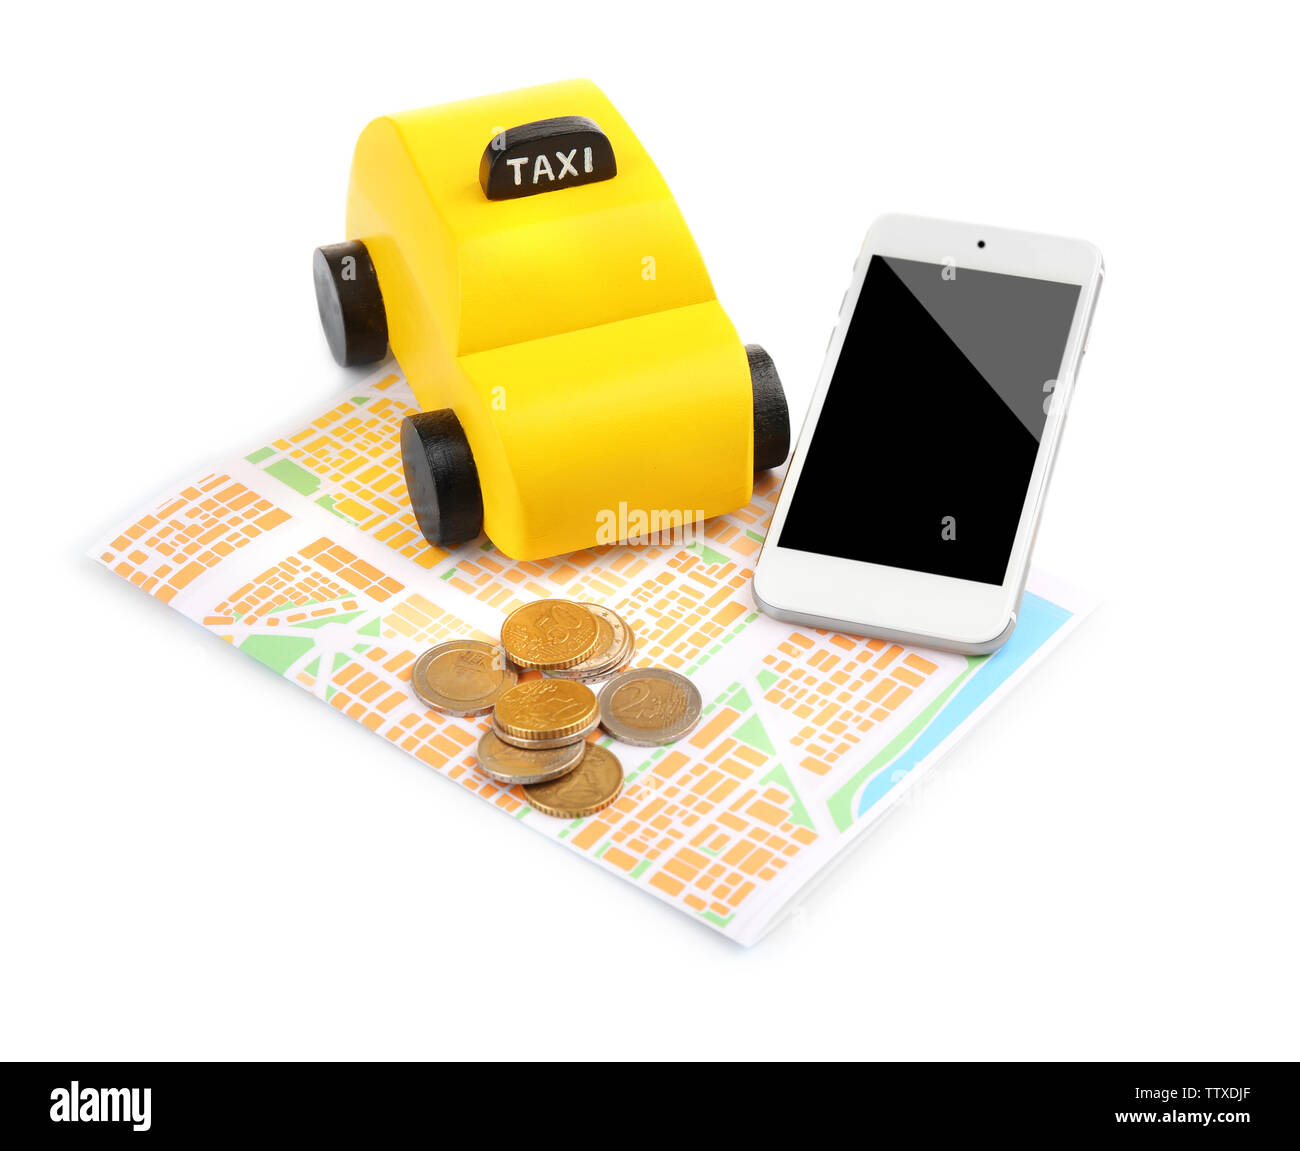 Yellow toy taxi, map, smartphone and coins on white background - Stock Image